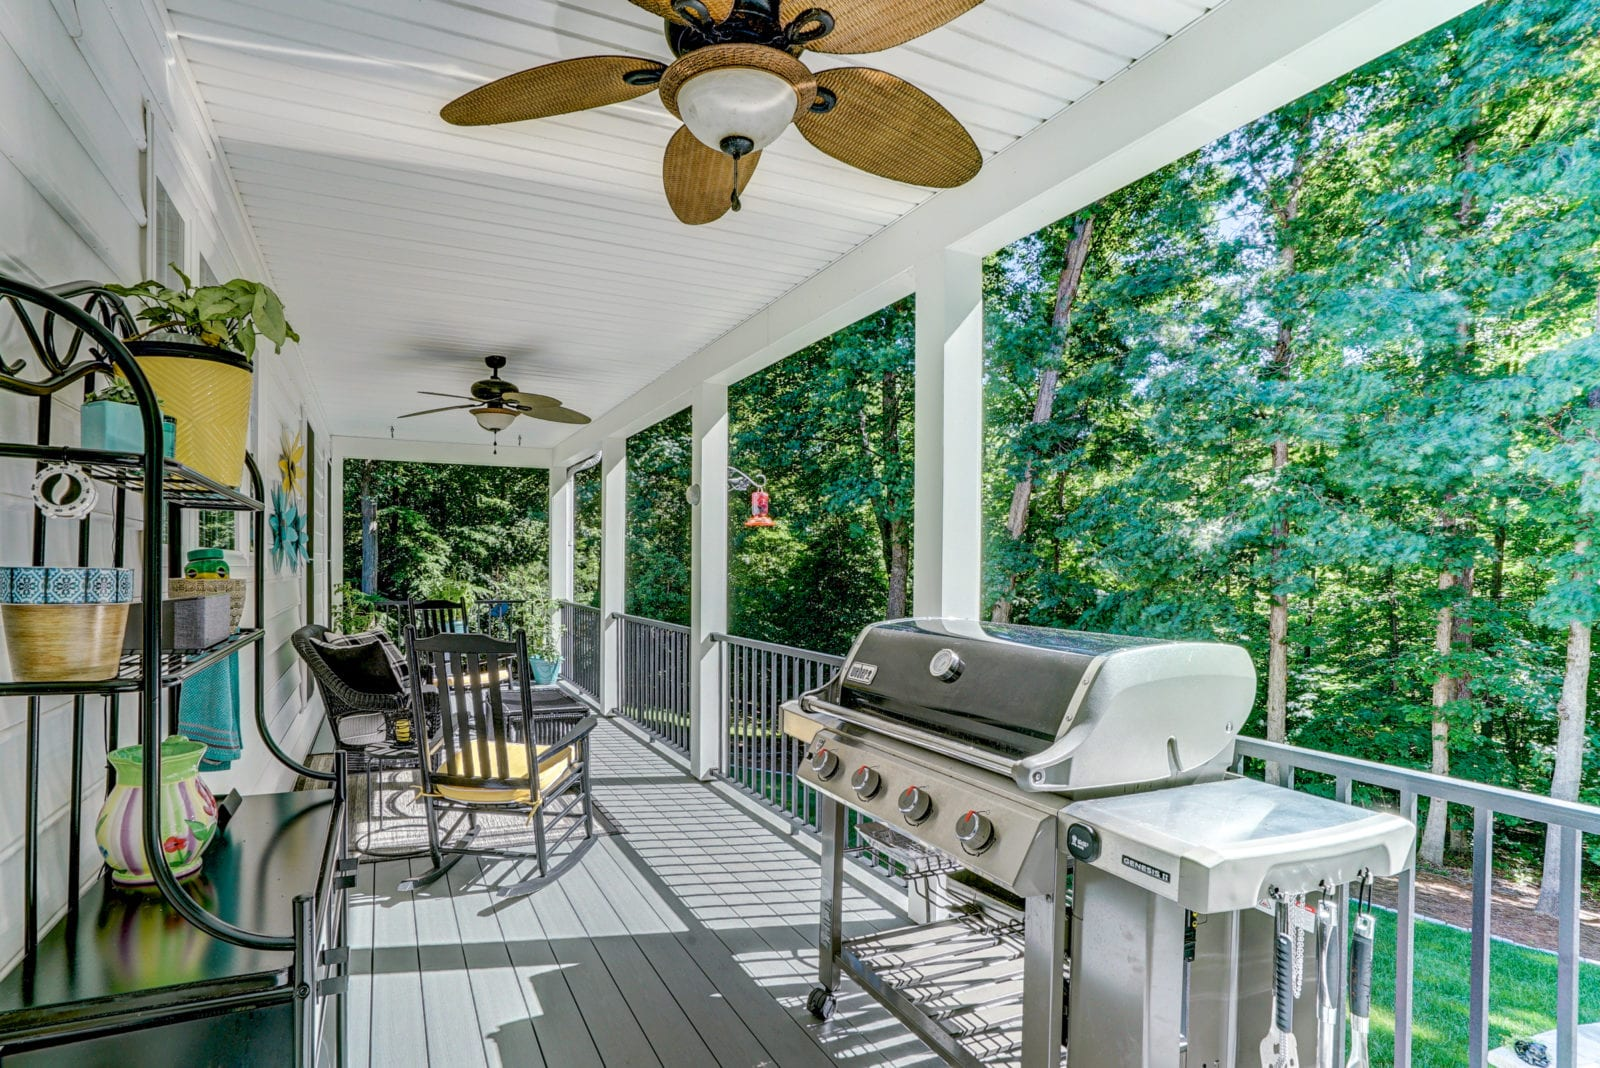 Deck with an Outdoor Fan and Grill in Virginia